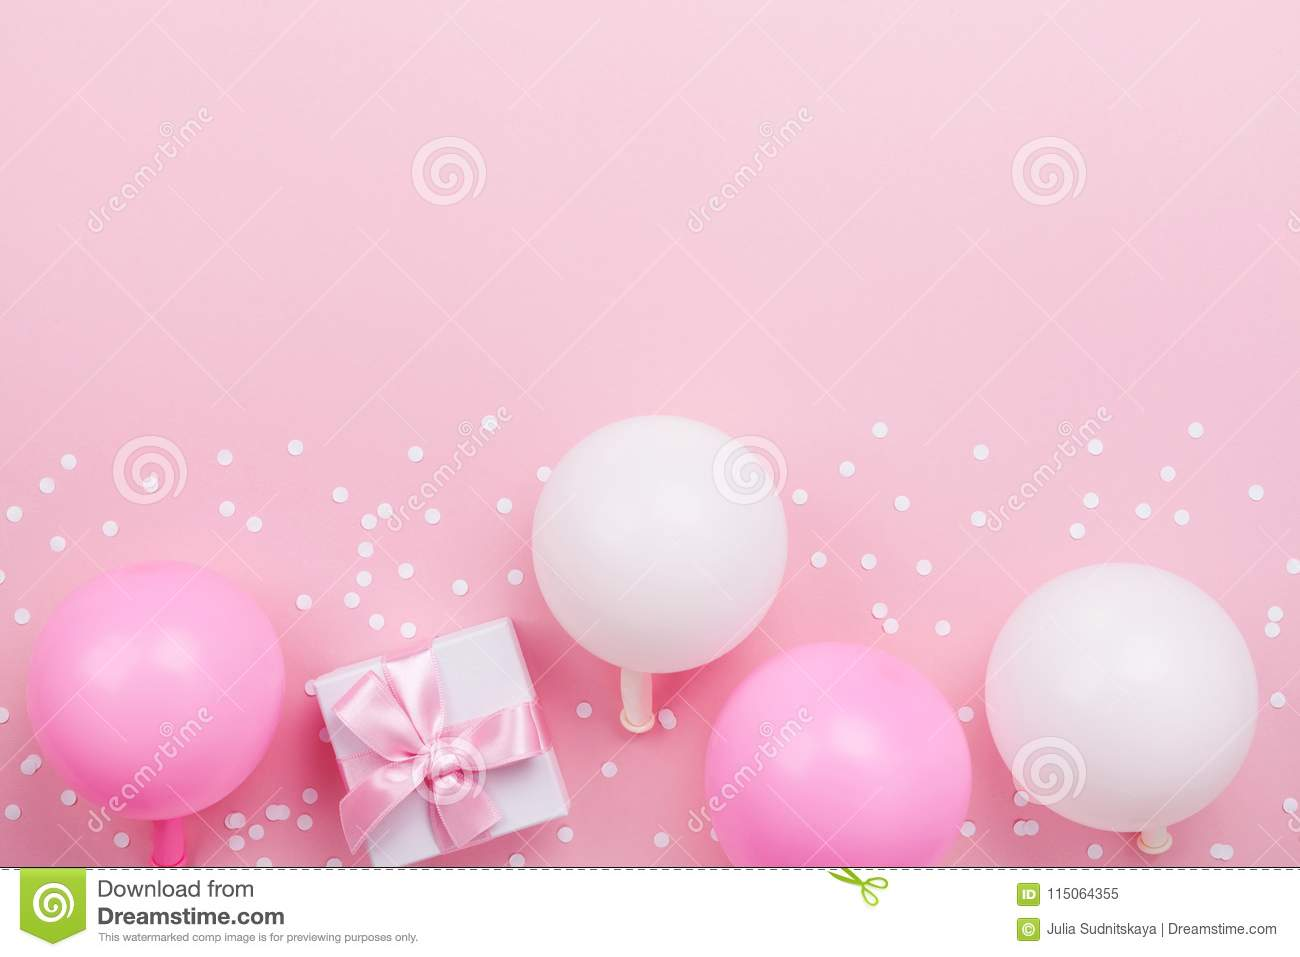 Gift or present box, pastel balloons and confetti on pink table top view. Flat lay composition for birthday, mother day or wedding